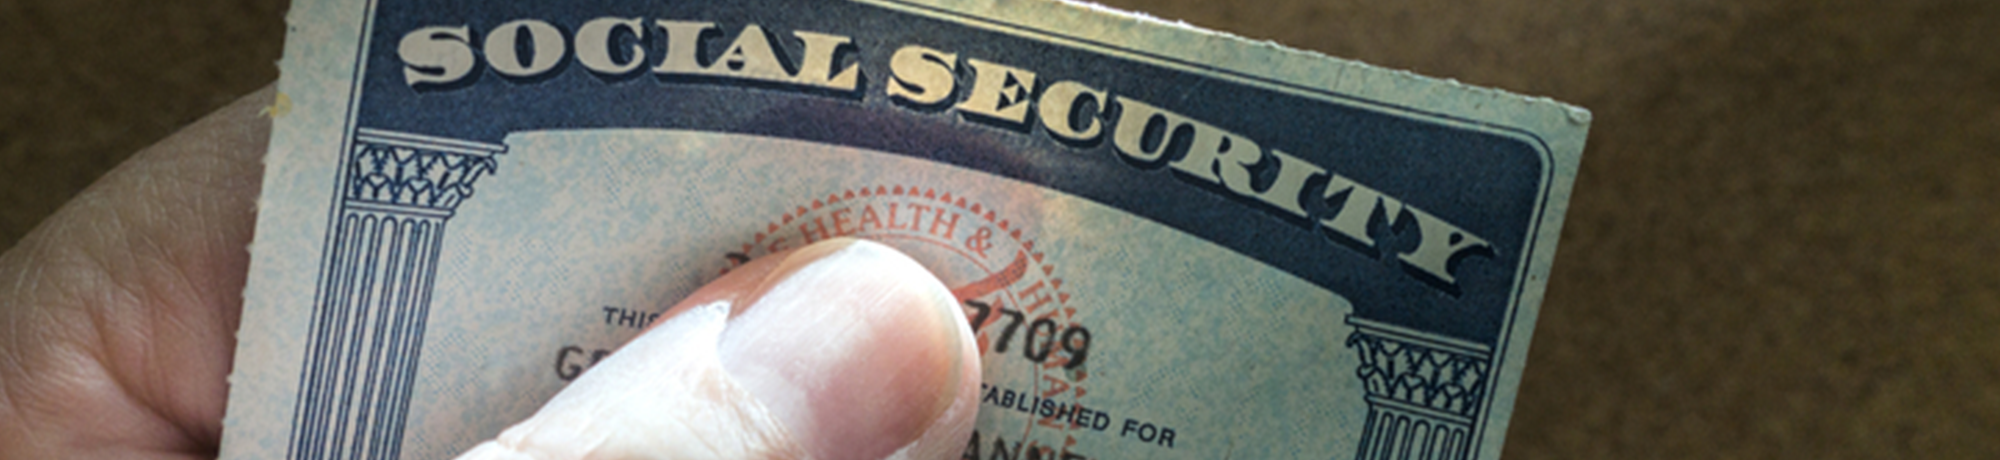 hand holding a social security card